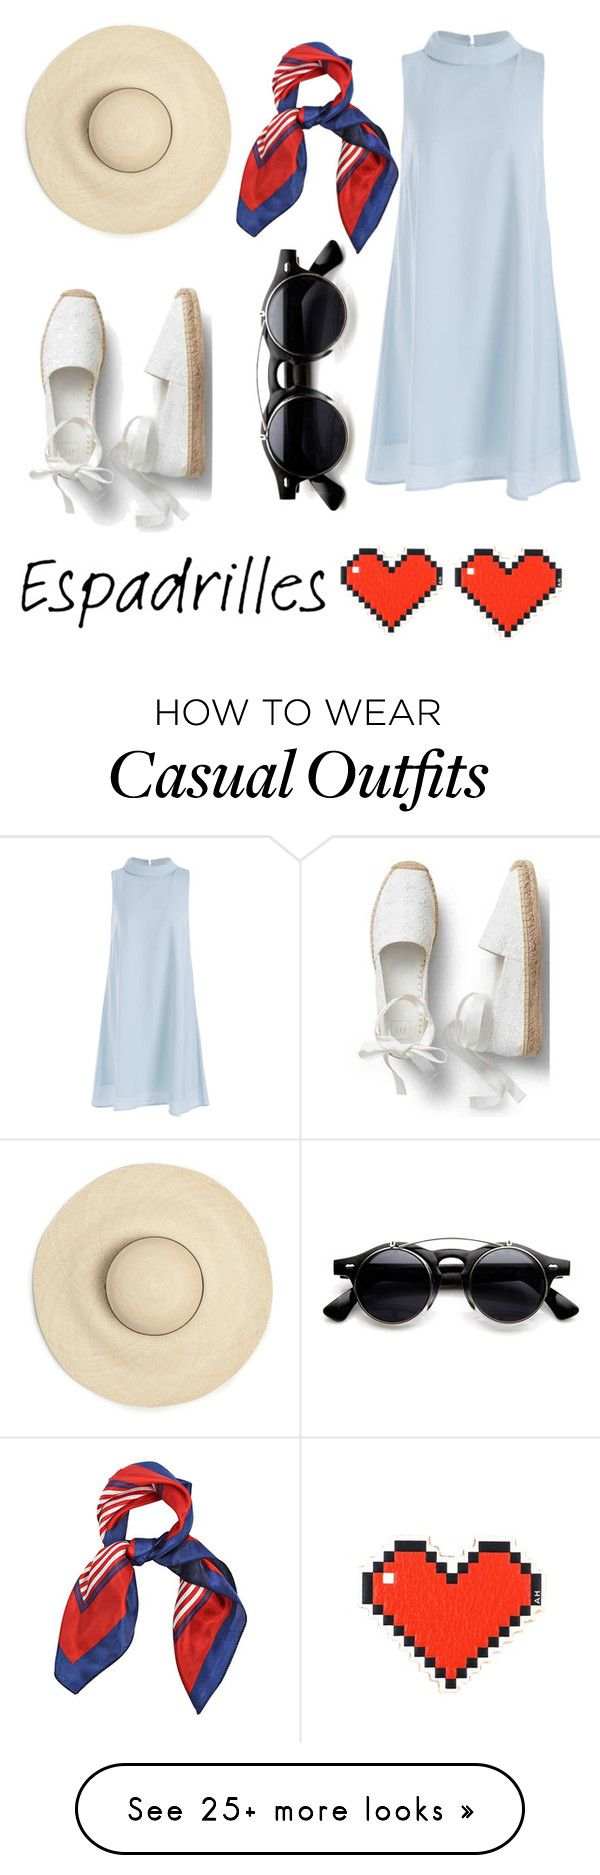 """Espadrilles Casual"" by trend-makers on Polyvore featuring Anya Hindmarch"